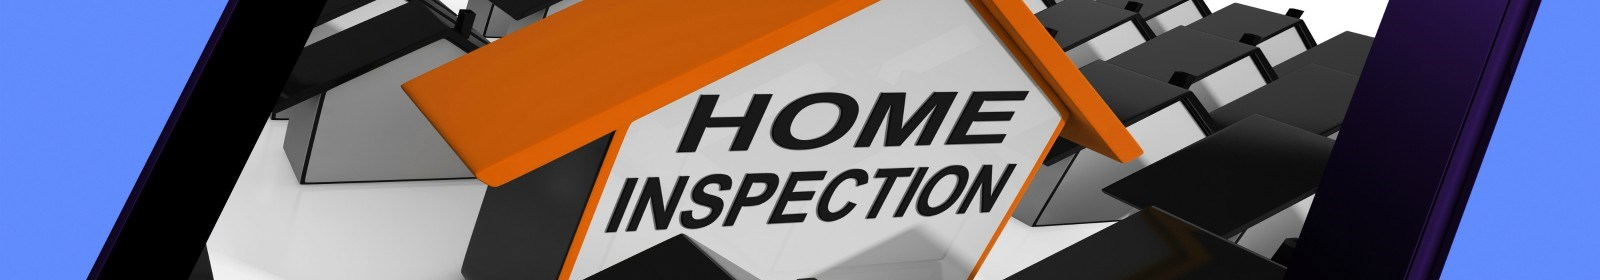 Inspections protect both landlords and tenants